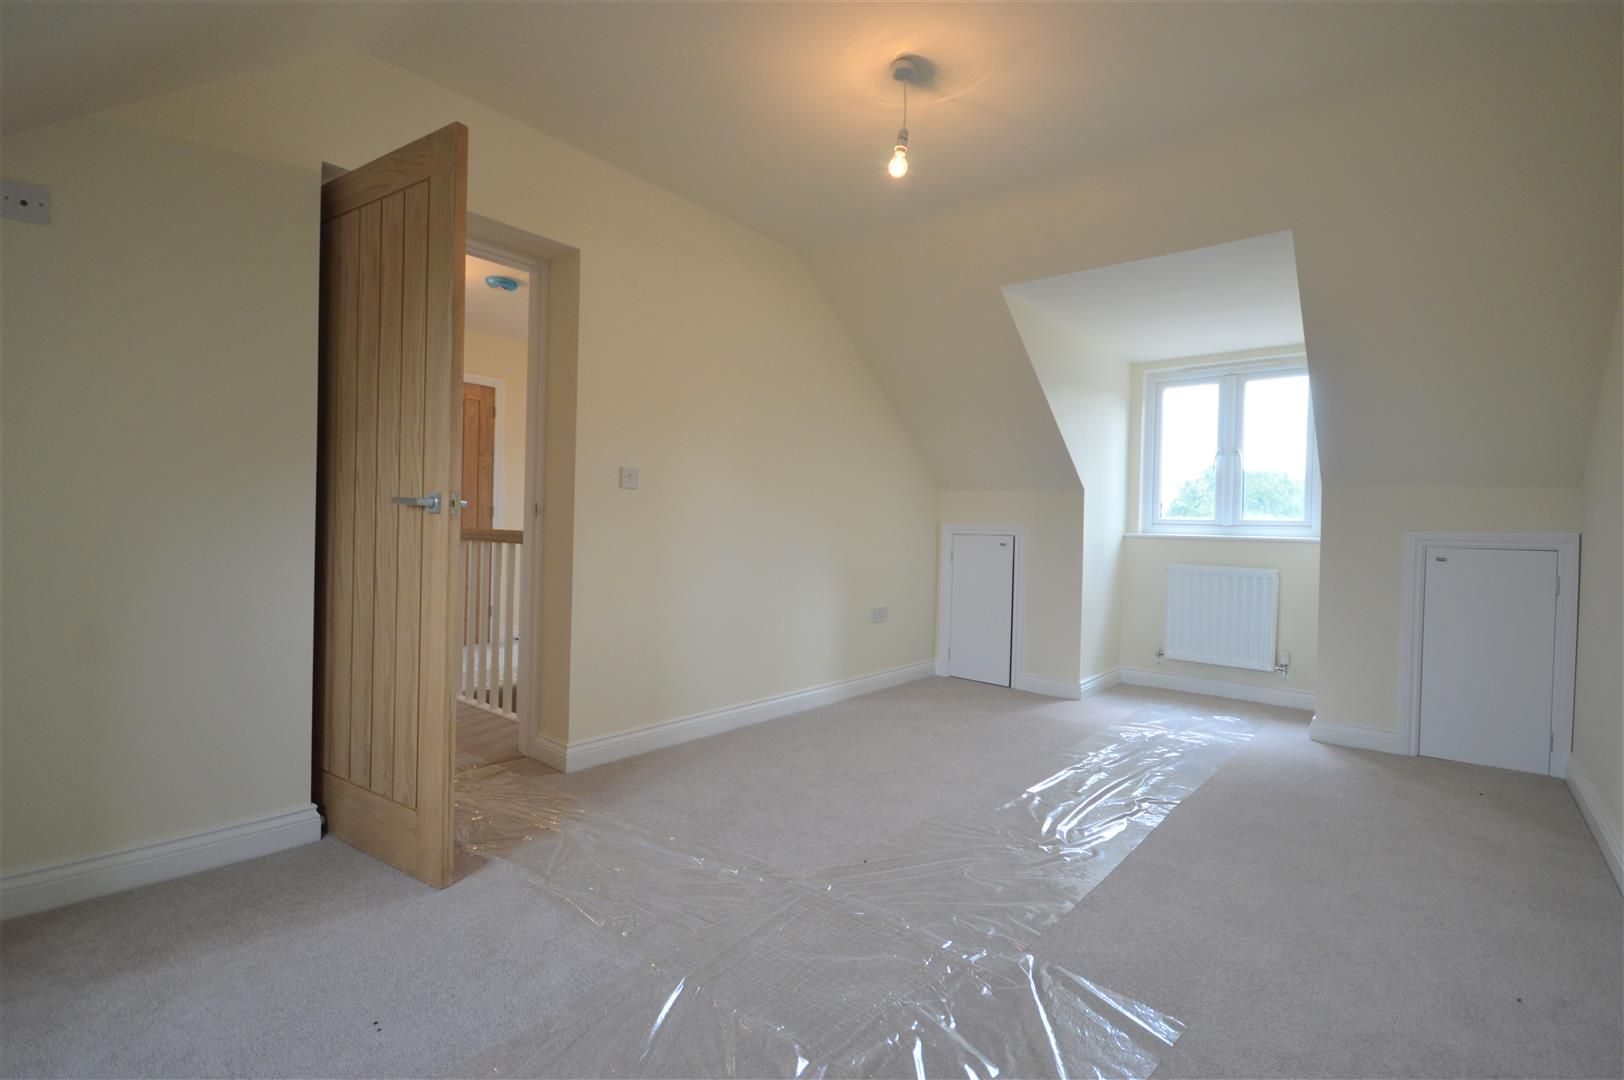 4 bed detached for sale in Kingsland  - Property Image 7